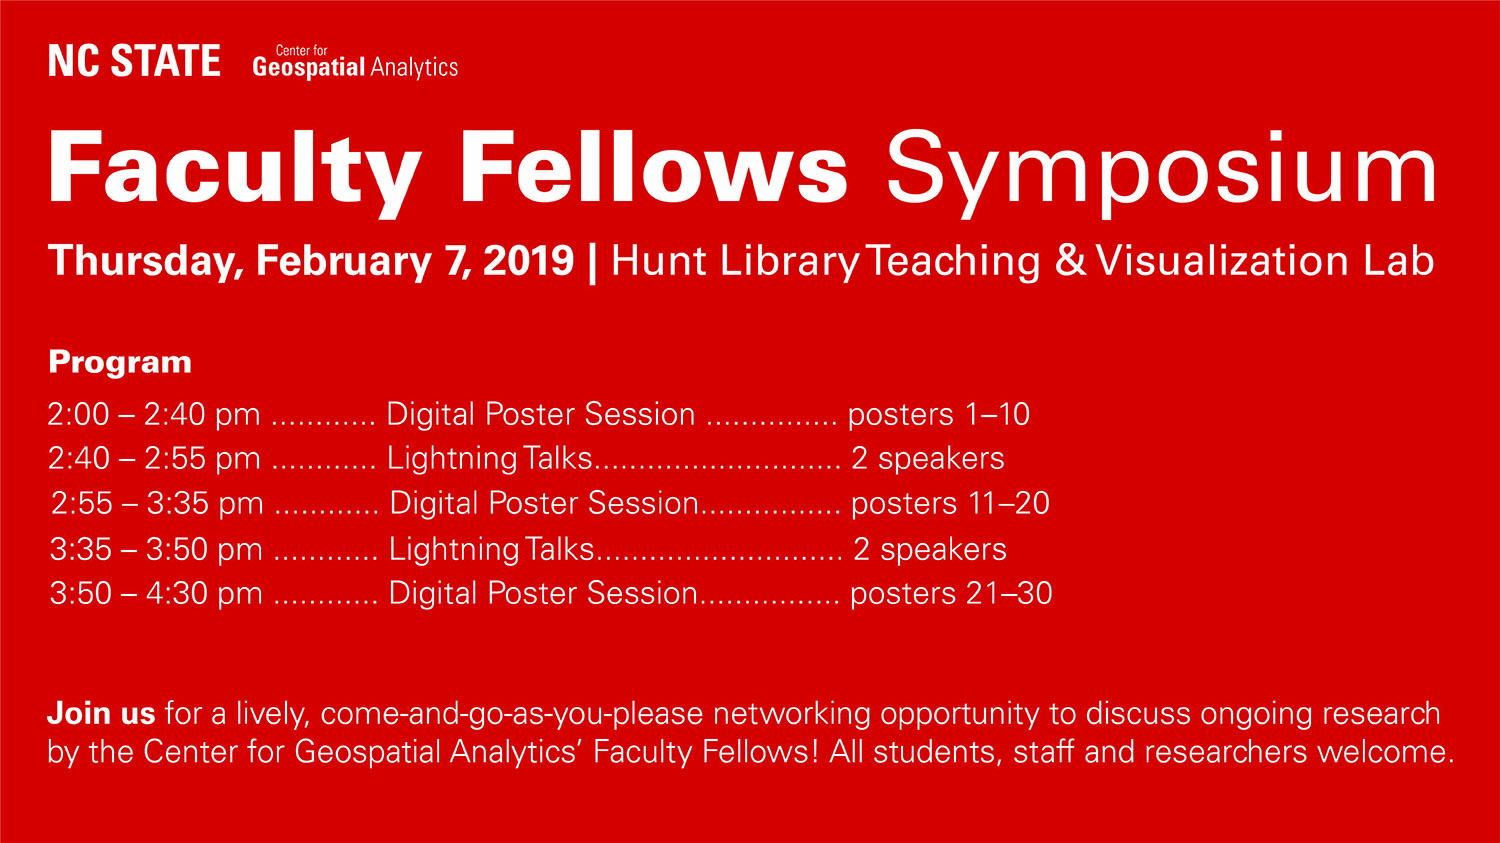 Faculty Fellows Symposium